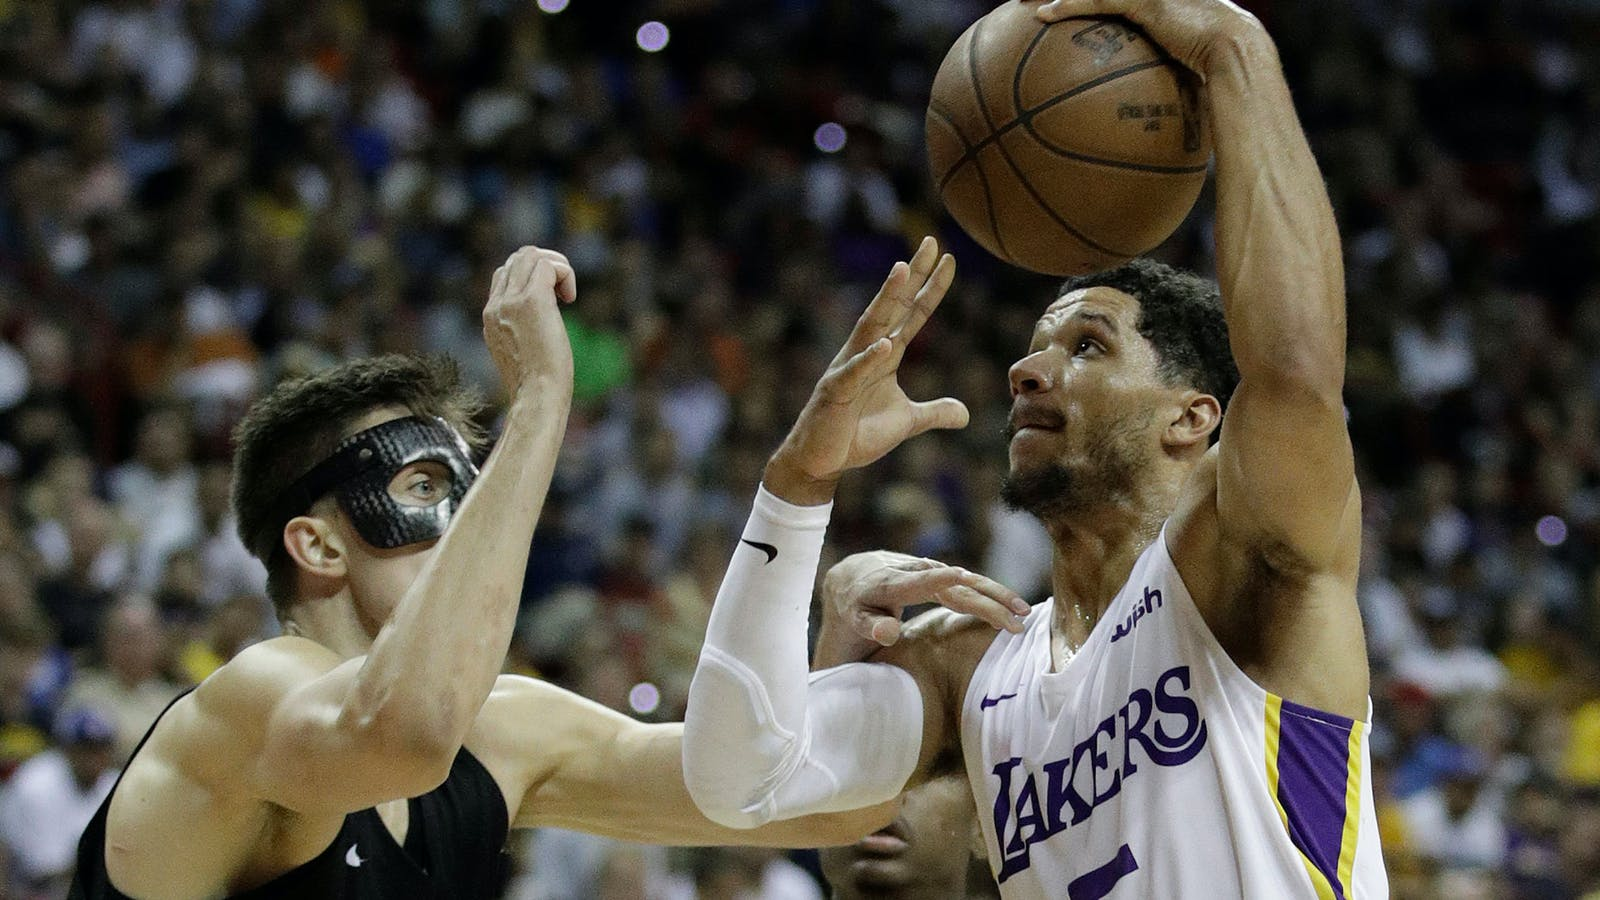 Los Angeles Lakers' Josh Hart and Portland Trail Blazers' Zach Collins during an NBA game earlier this month. Photo by AP